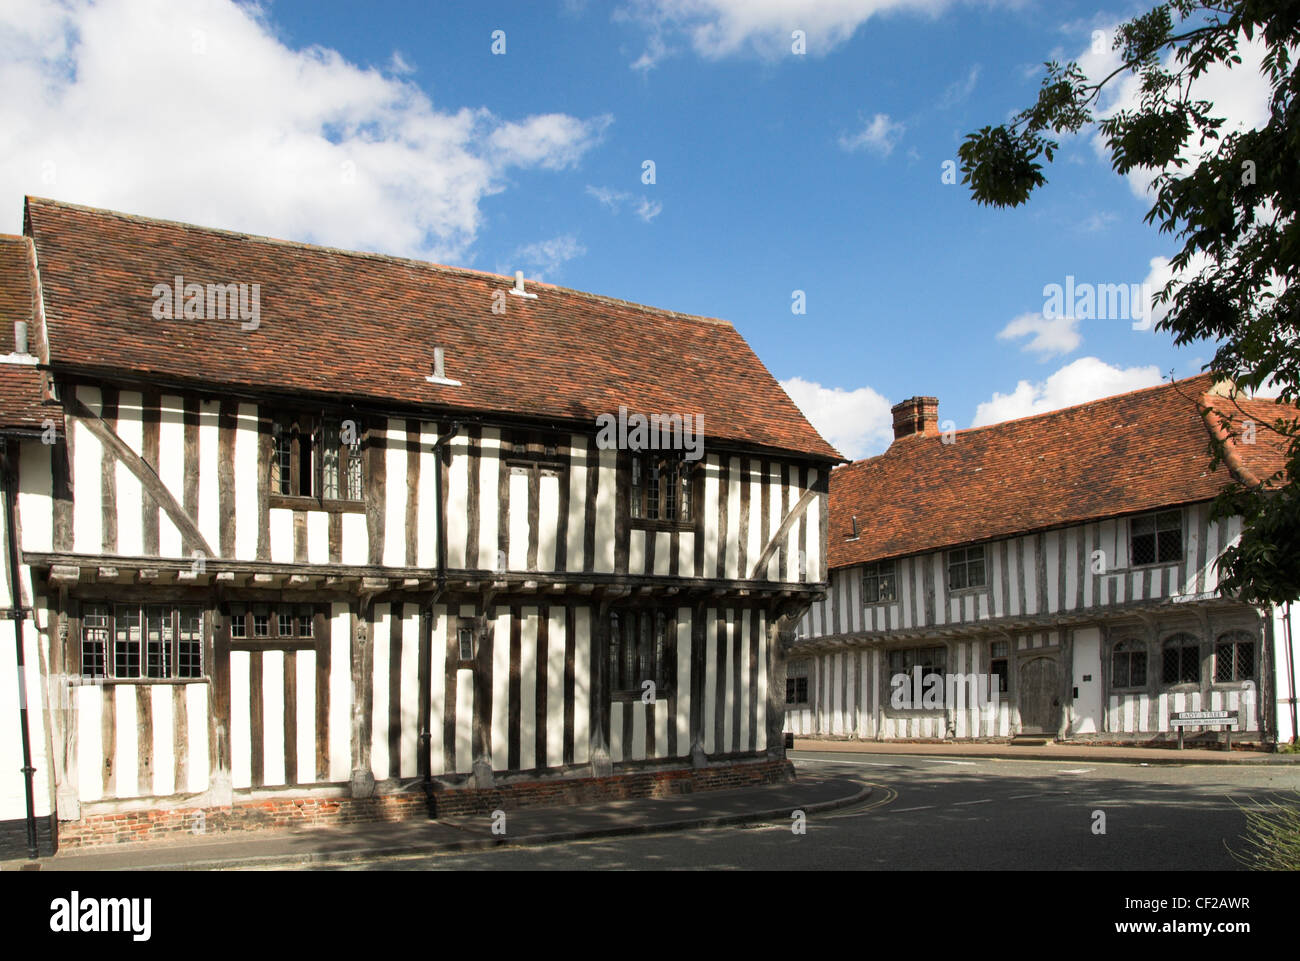 Half-timbered medieval houses in the village of Lavenham. - Stock Image